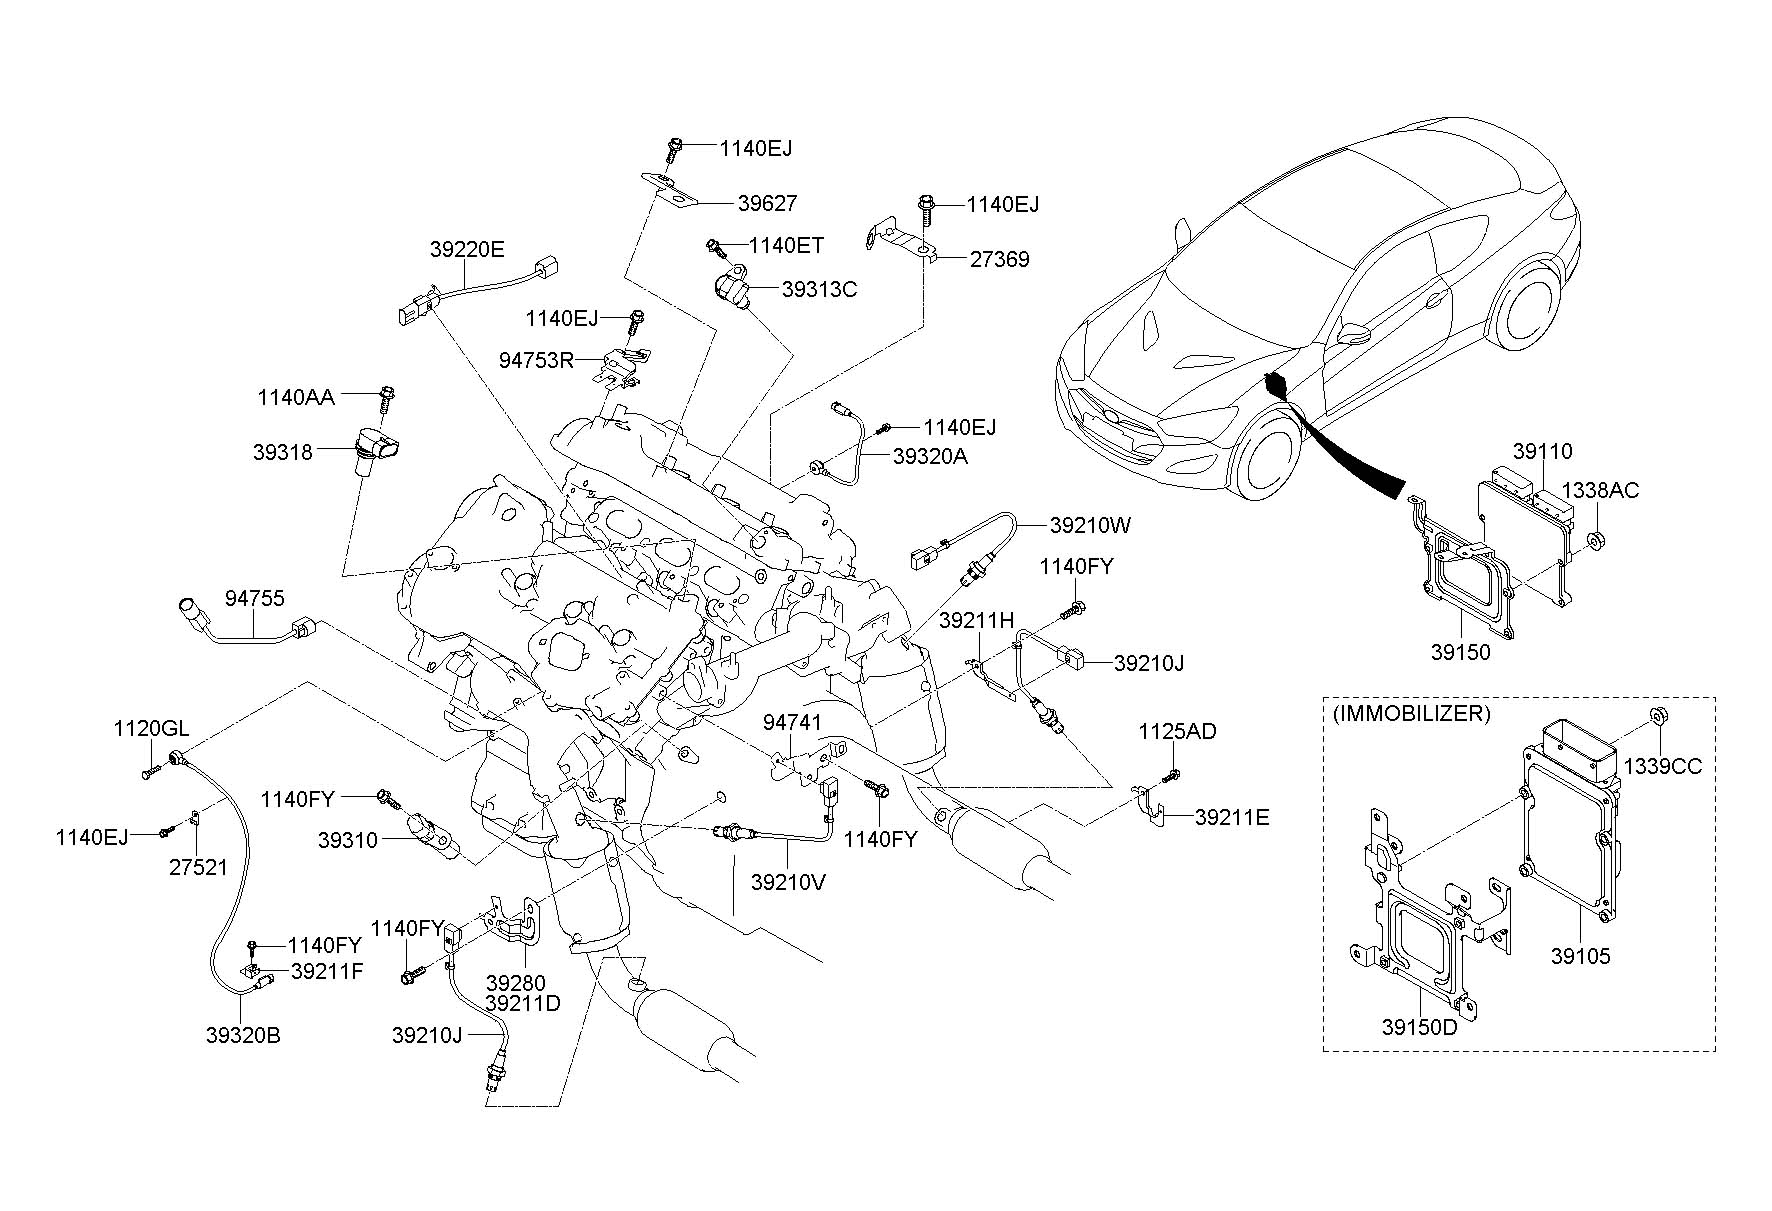 2015 hyundai genesis parts diagram html